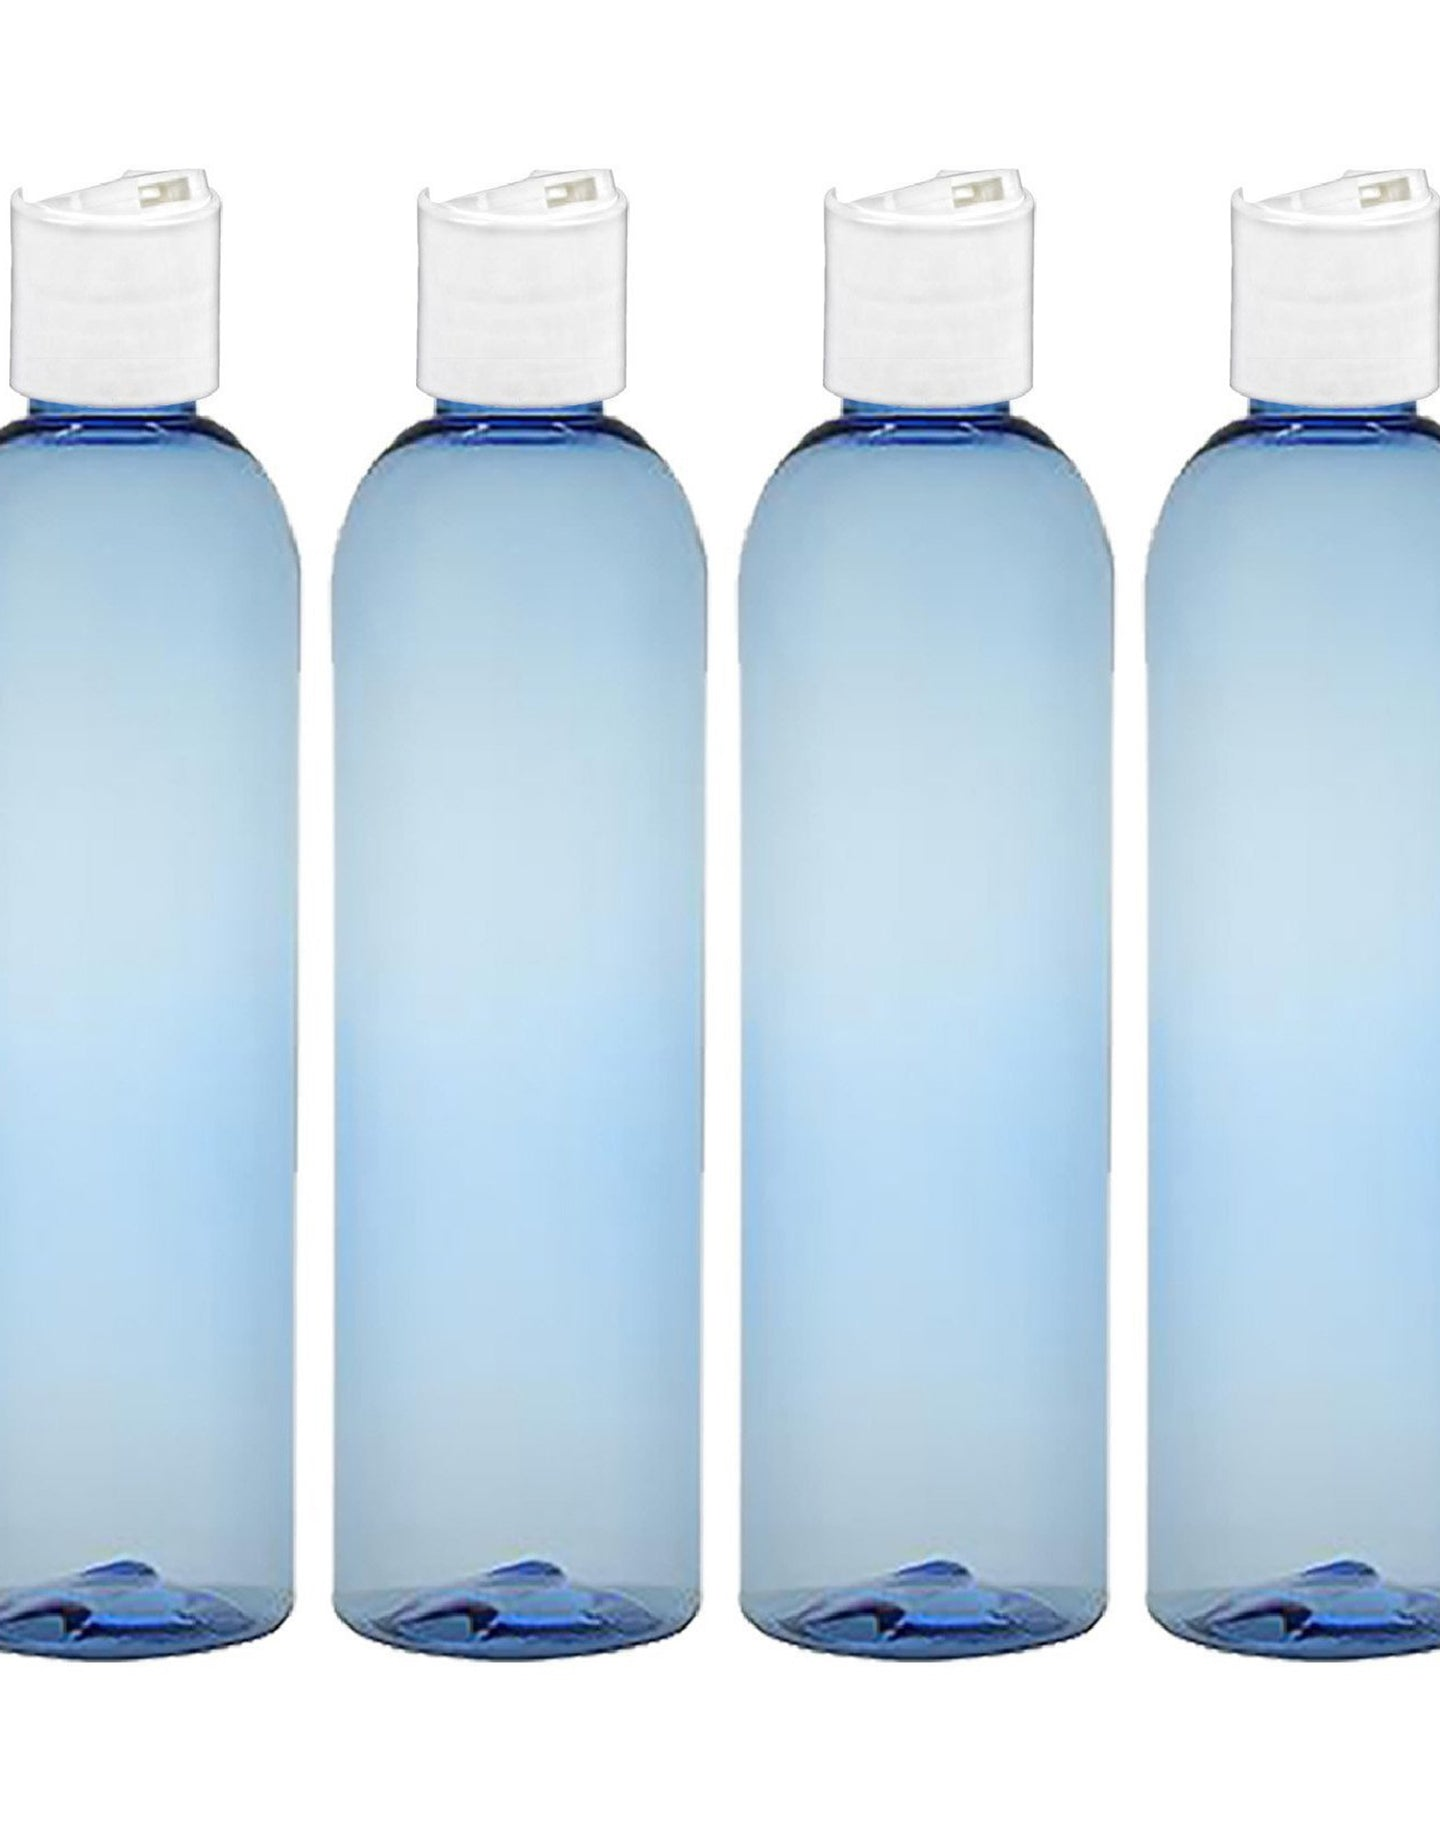 MoYo Natural Labs 8 oz Travel Bottles, Empty Travel Containers with Disc Caps, BPA Free PET Plastic Squeezable Toiletry/Cosmetic Bottles (Pack of 4, Light Blue)